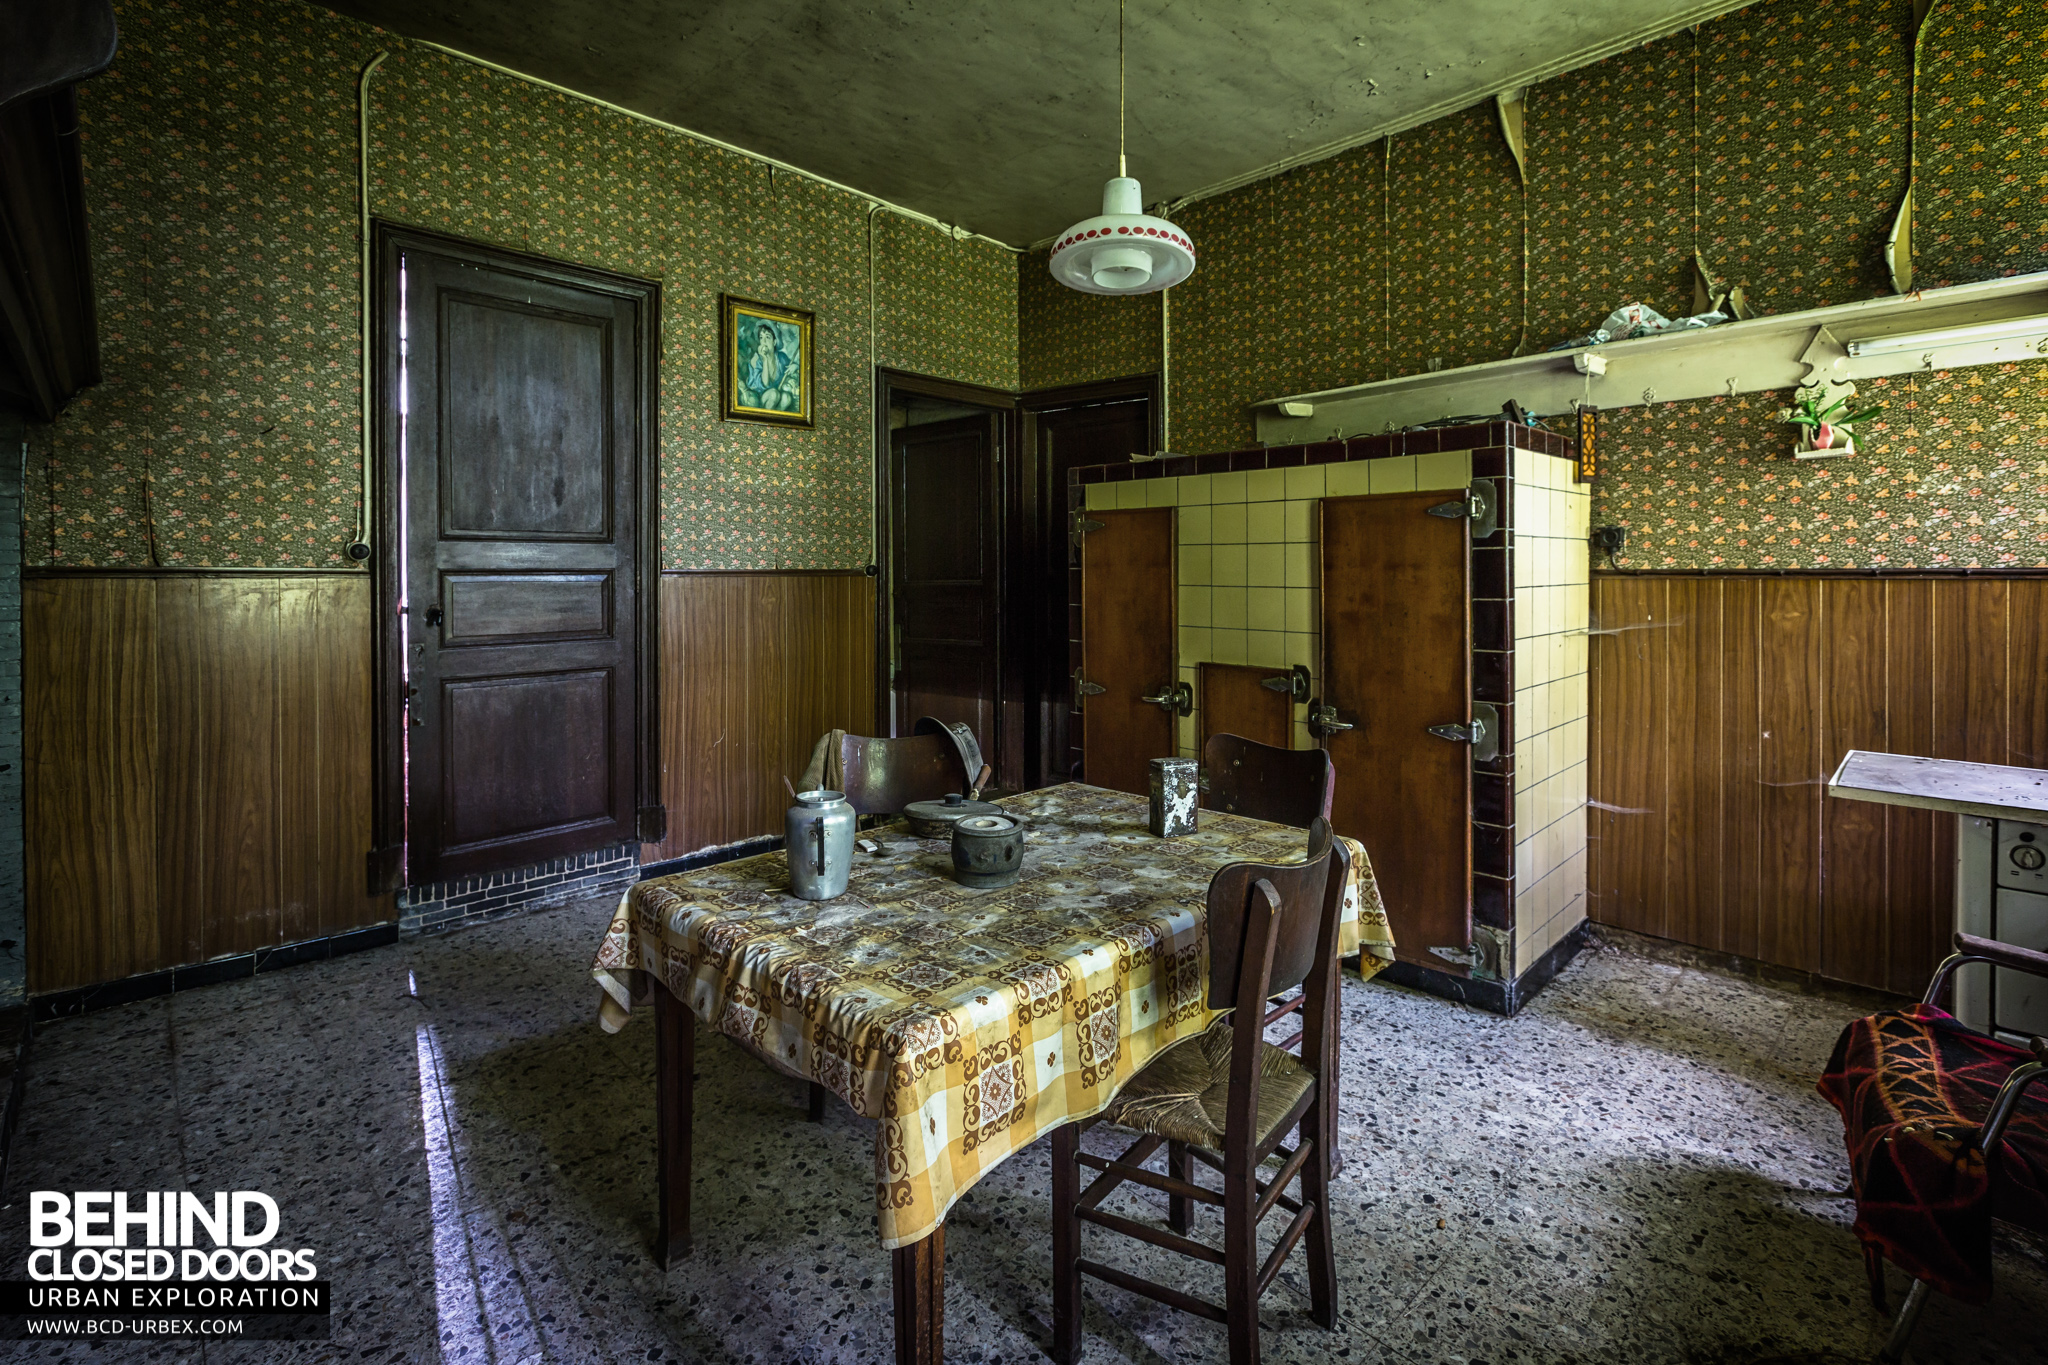 Maison Gustaaf Abandoned House Belgium 187 Urbex Behind